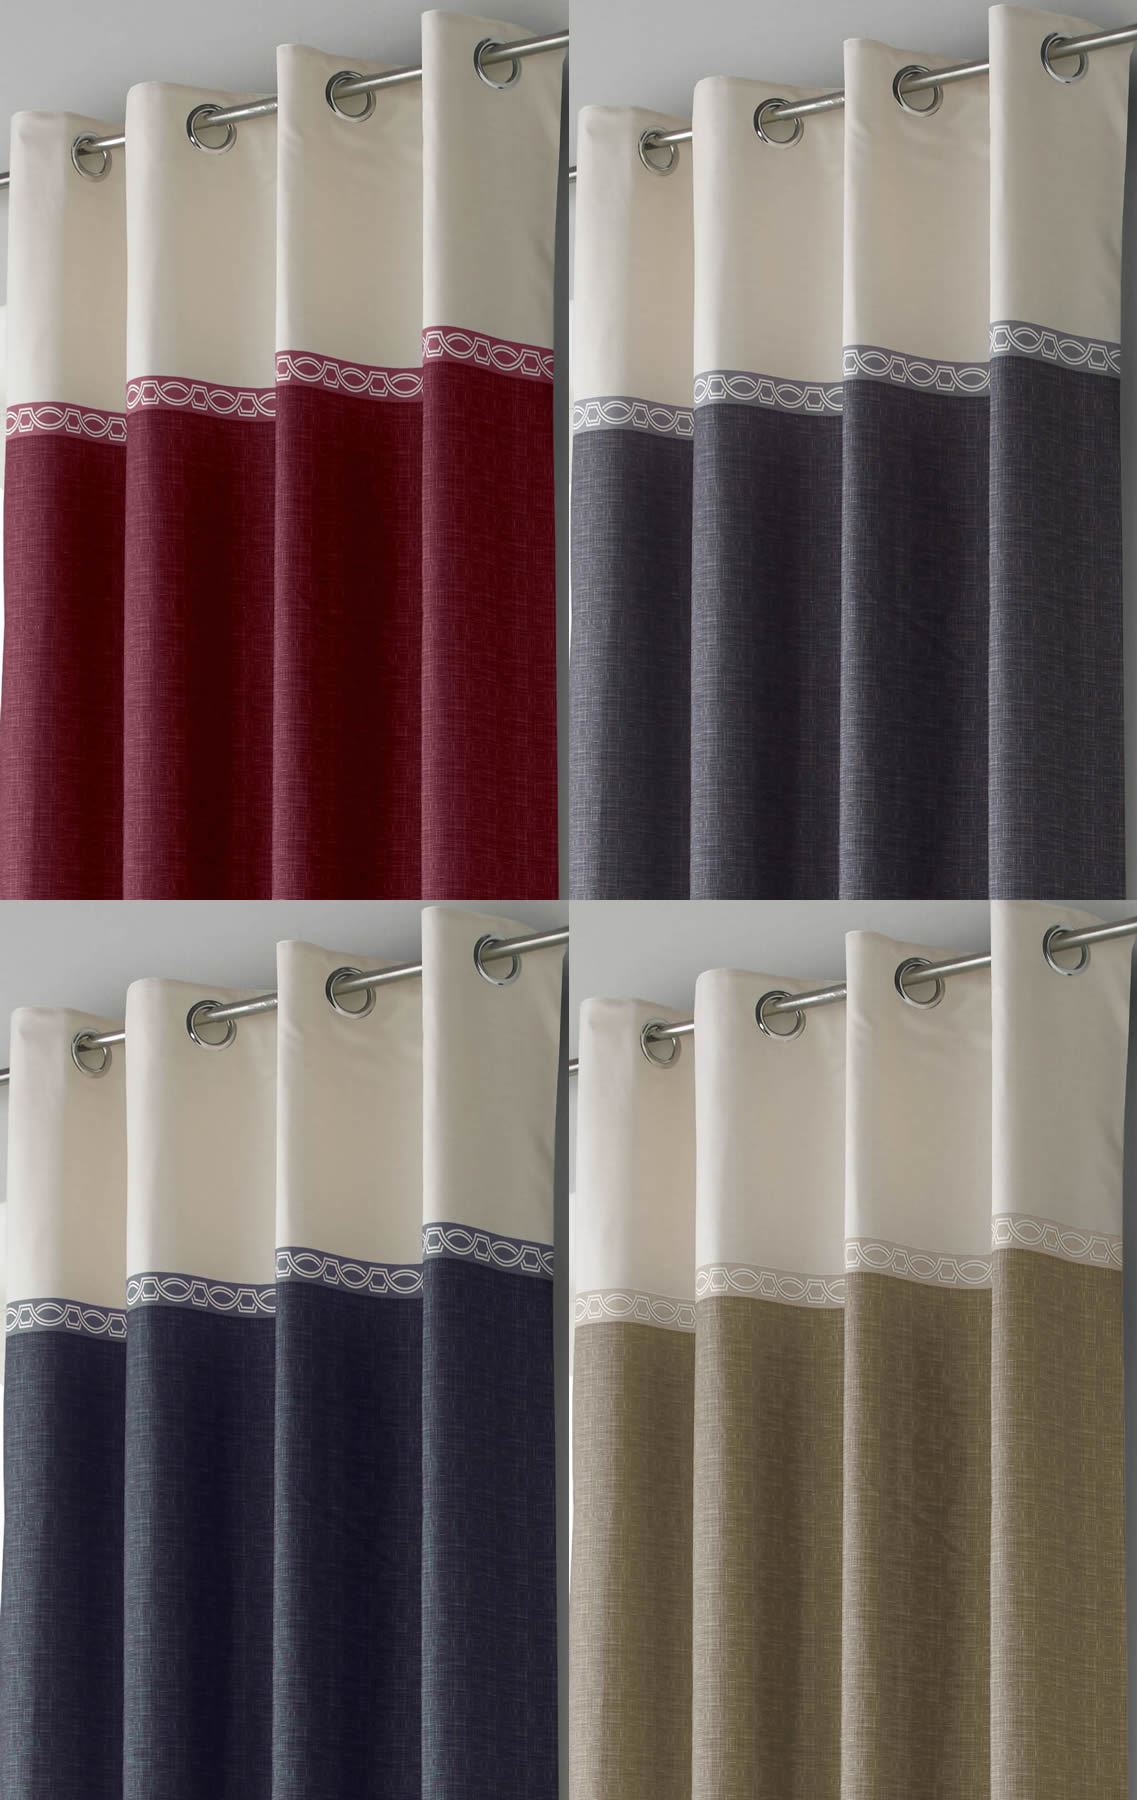 toronto lined eyelet curtains ready made ring top pairs beige blue grey red ebay. Black Bedroom Furniture Sets. Home Design Ideas